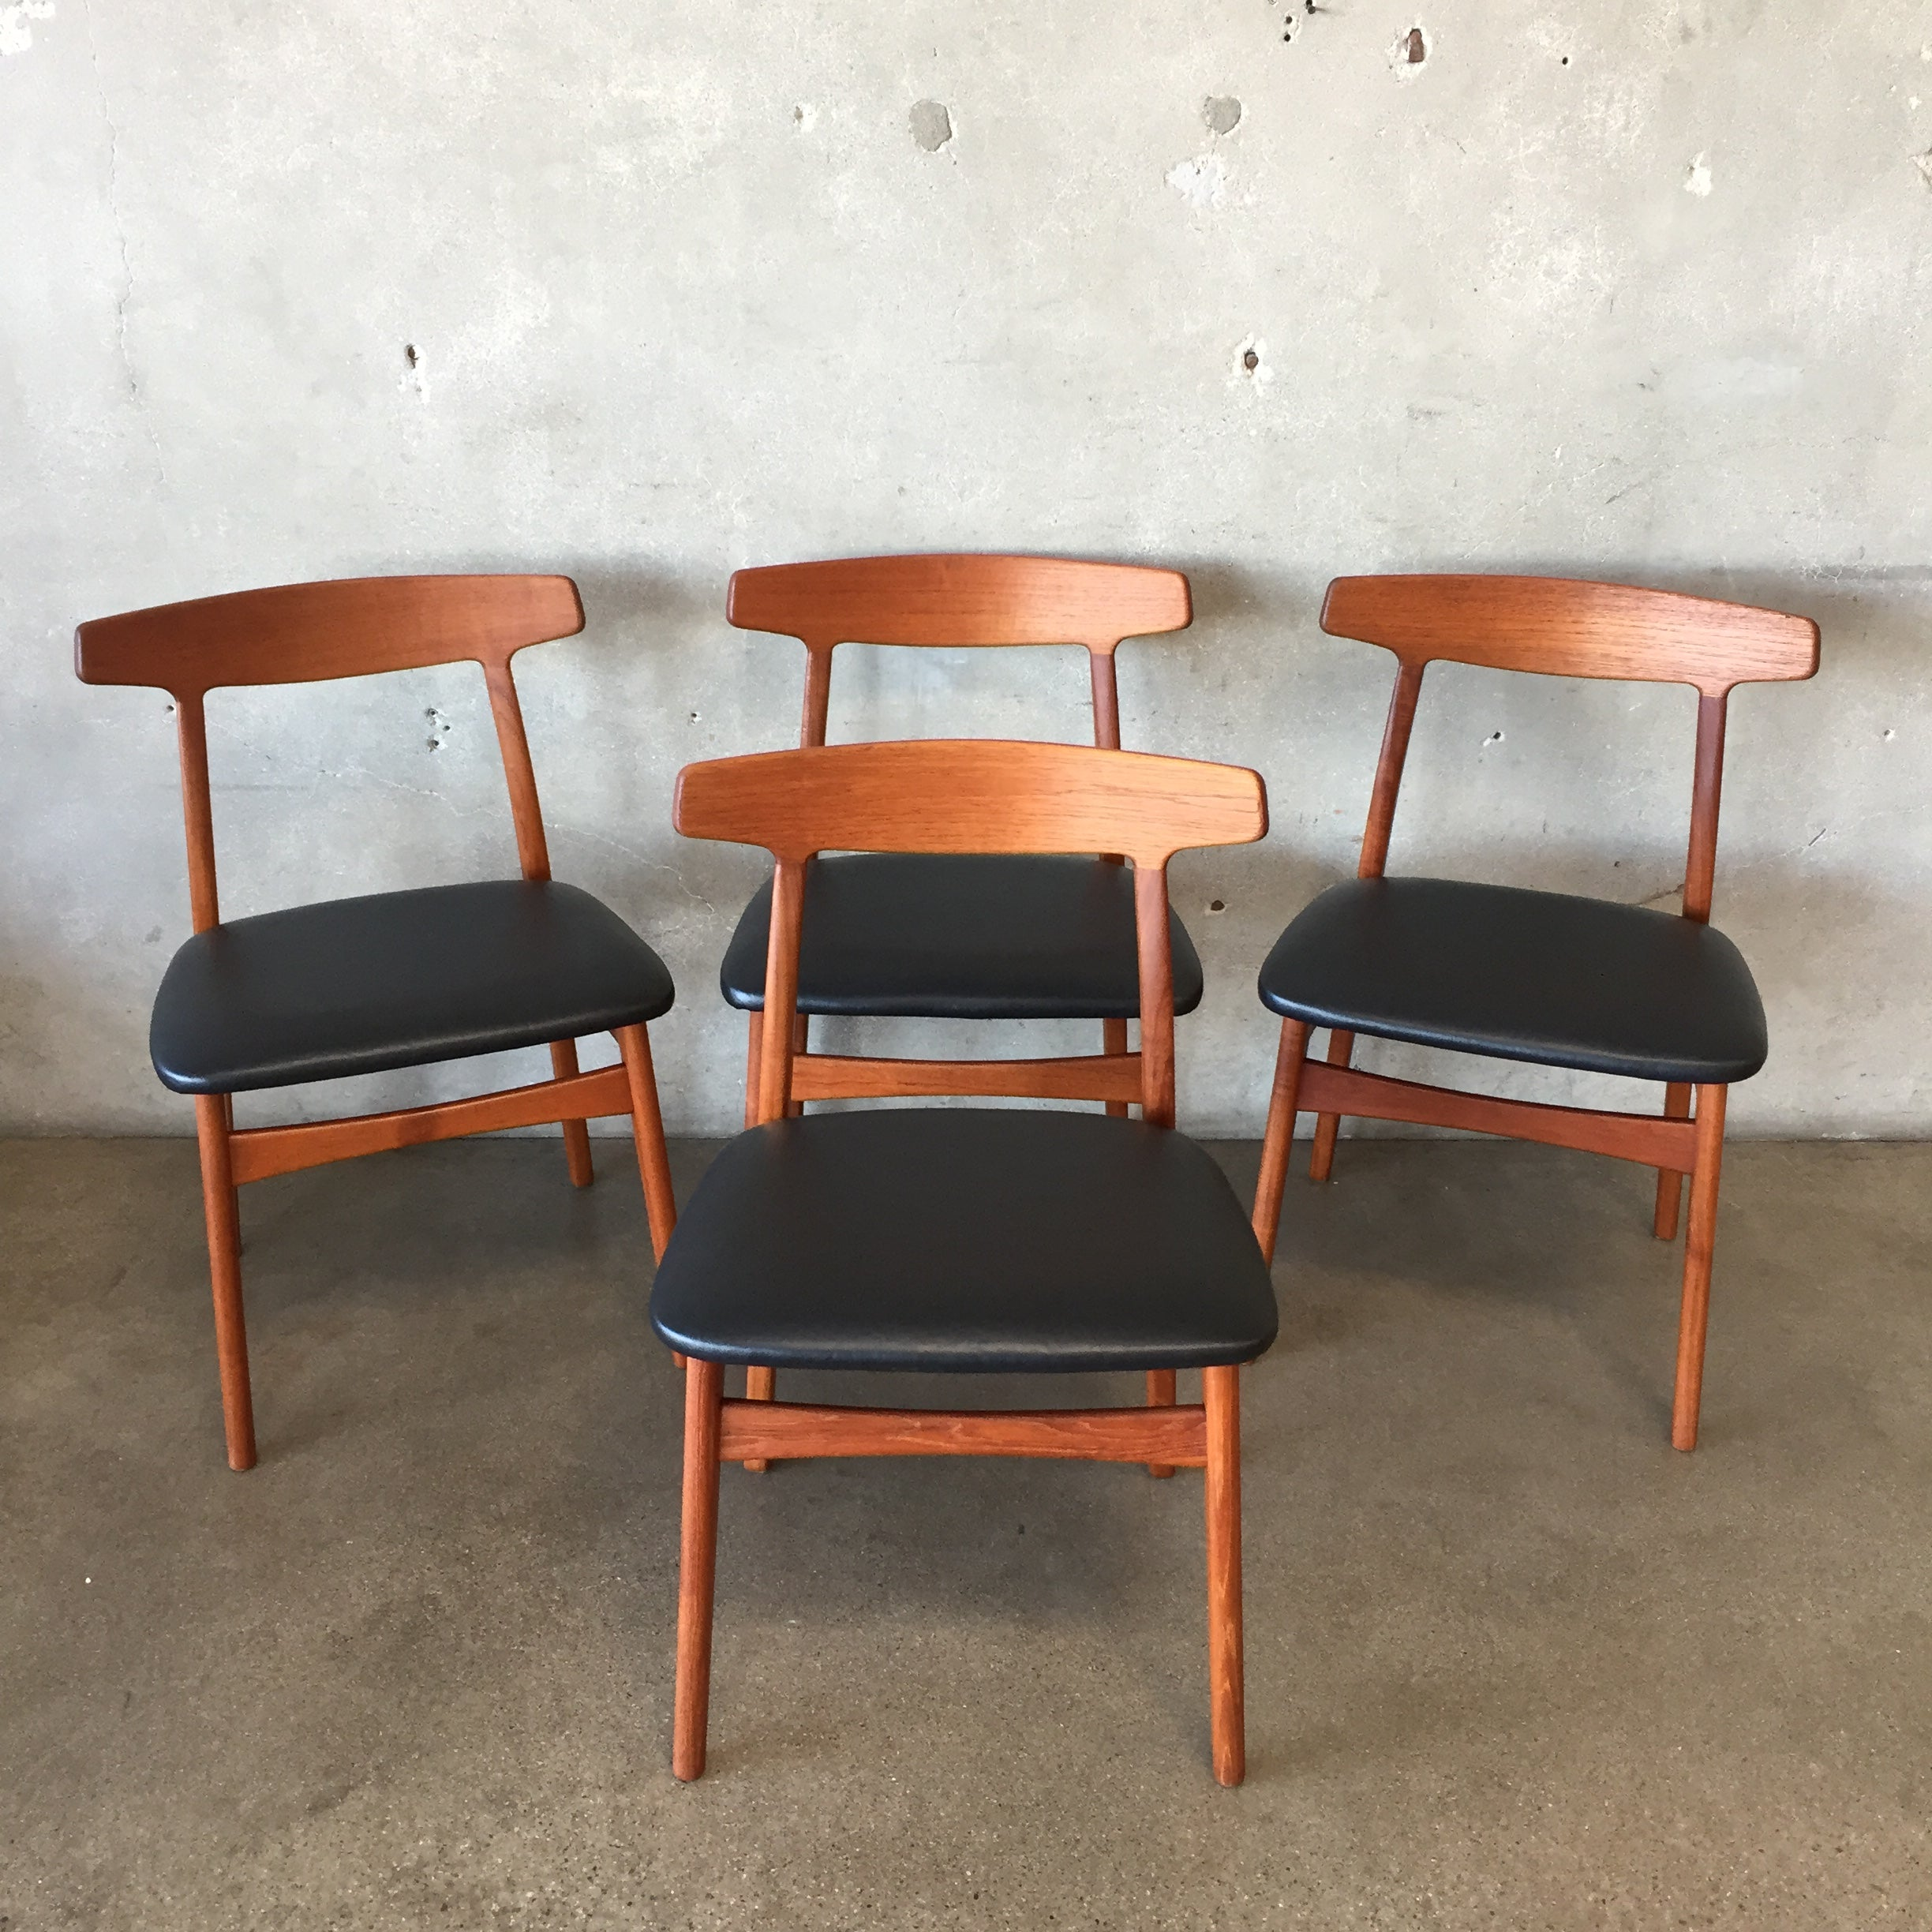 Swell Mid Century Modern Danish Modern Teak Dining Chairs Bralicious Painted Fabric Chair Ideas Braliciousco